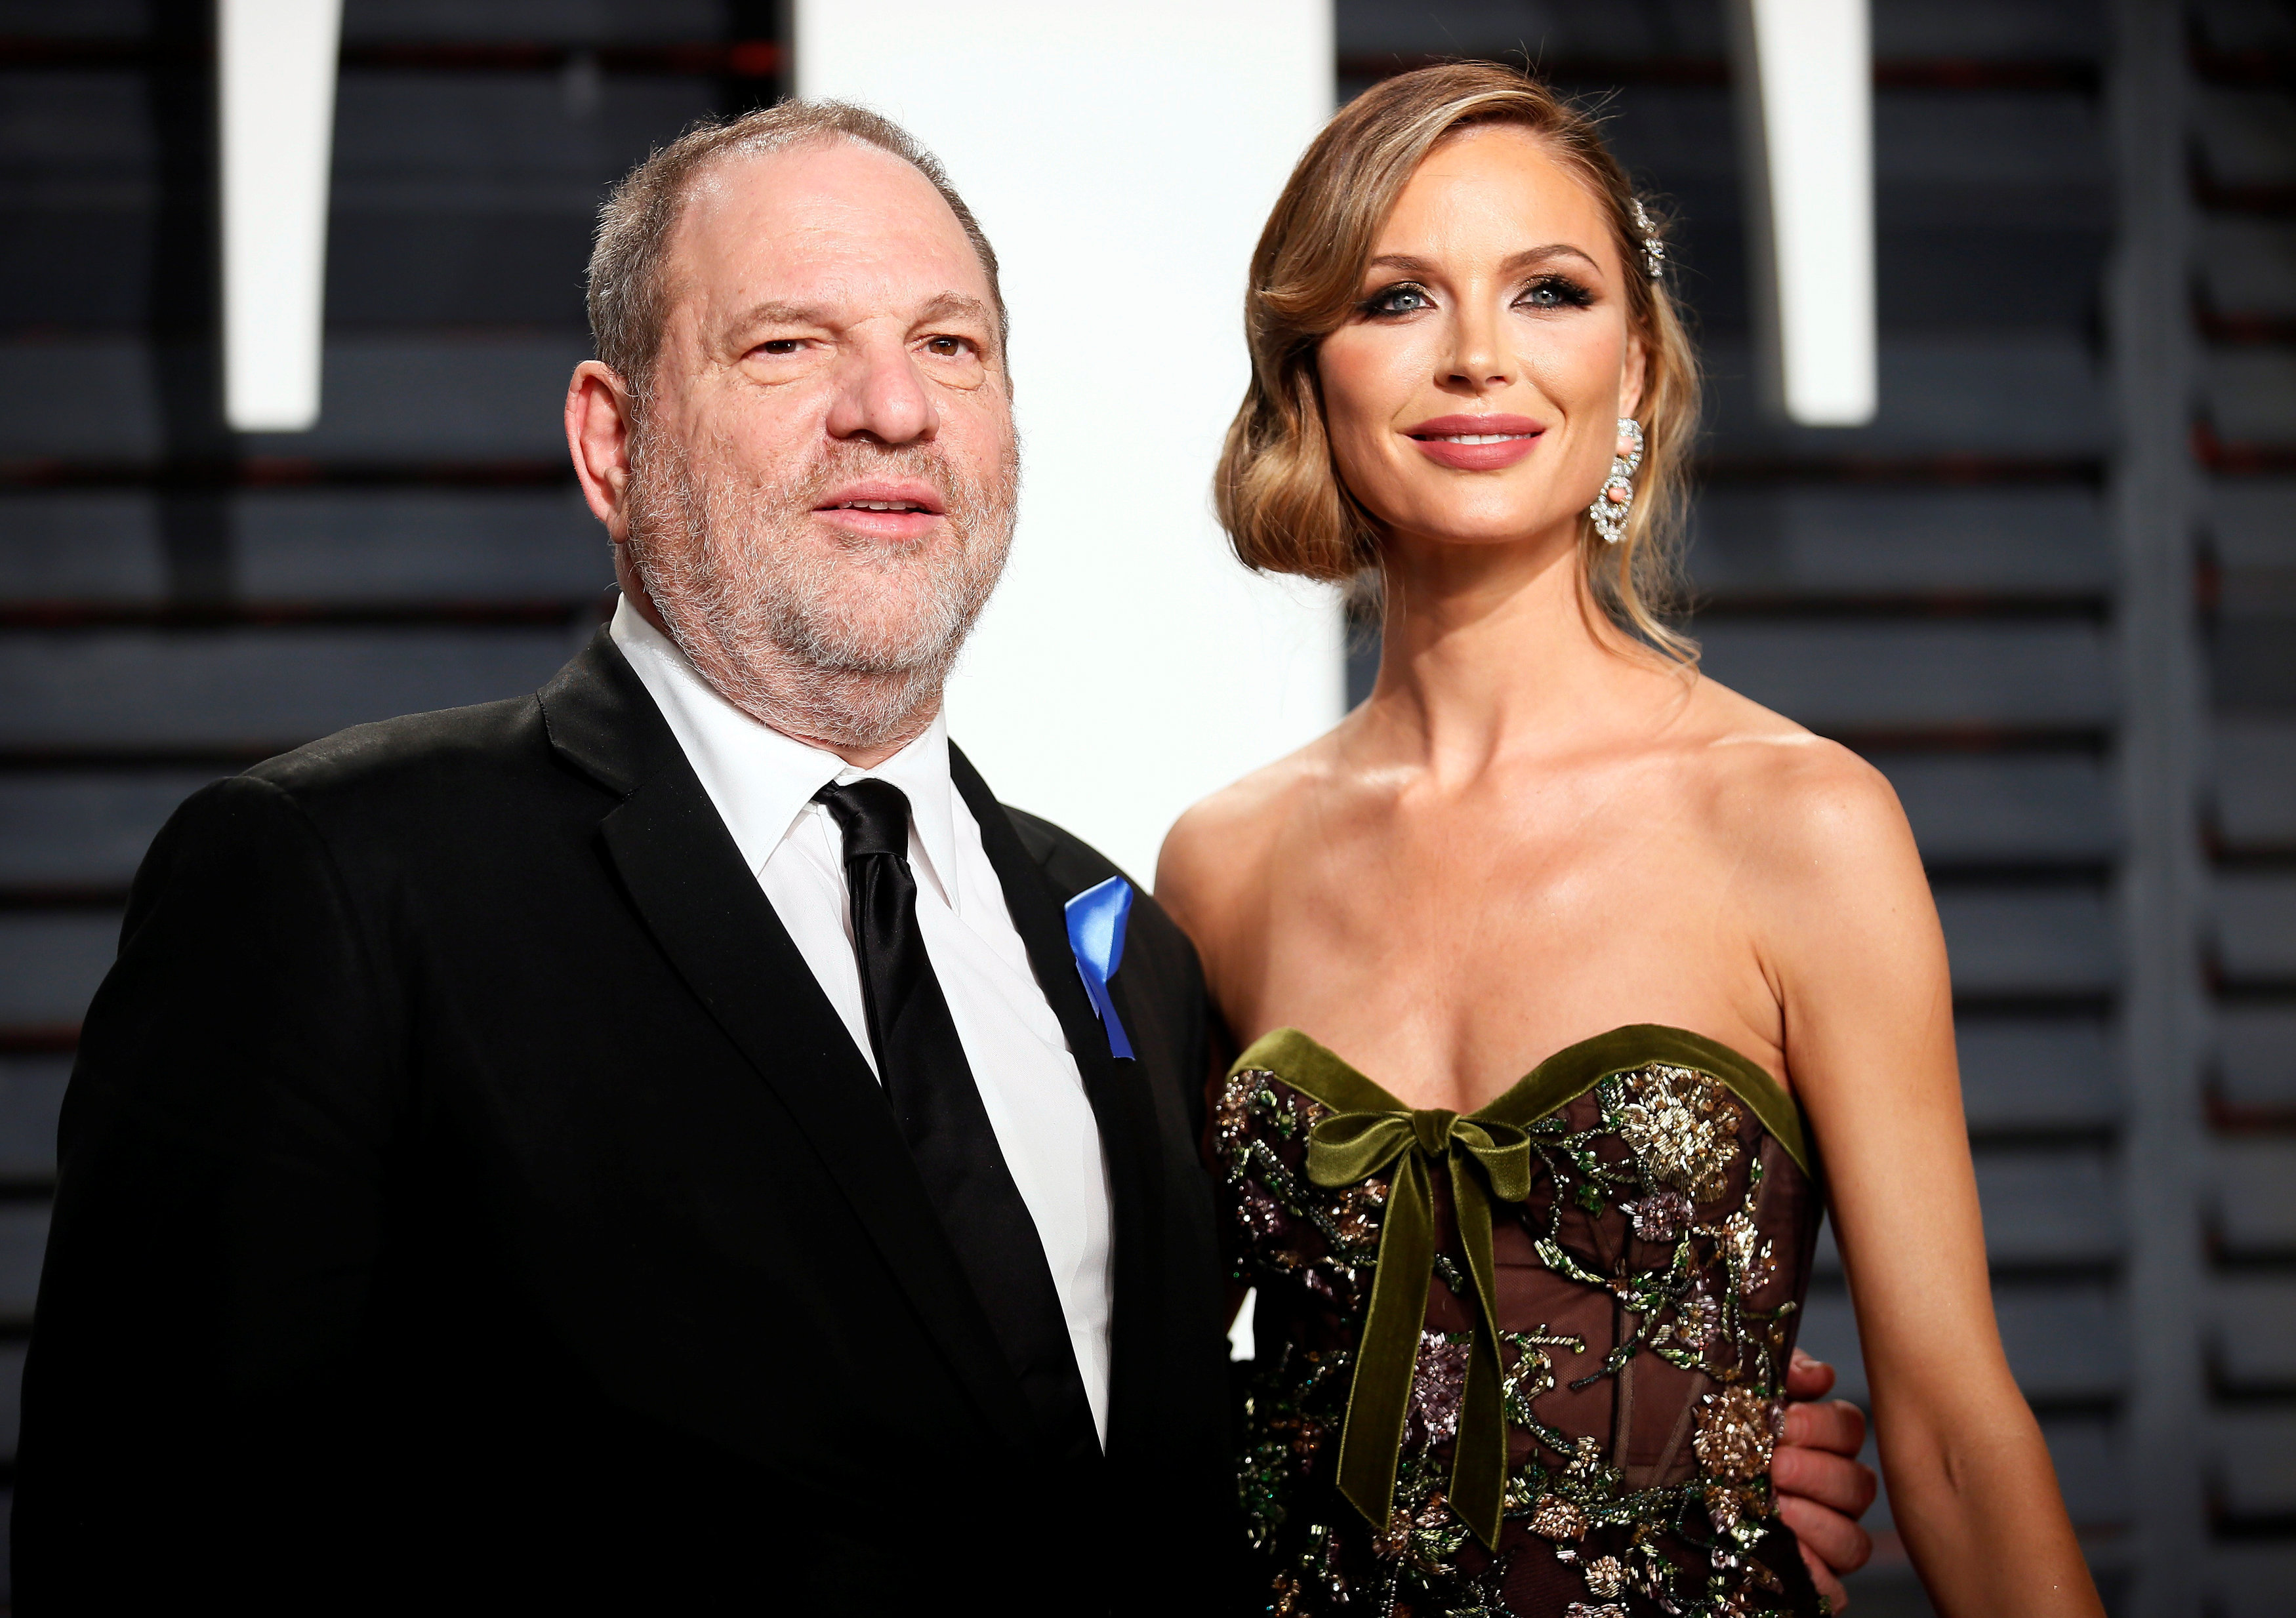 Producer Harvey Weinstein and his estranged fashion designer wife Georgina Chapman, who announced she has left him amid the scandal